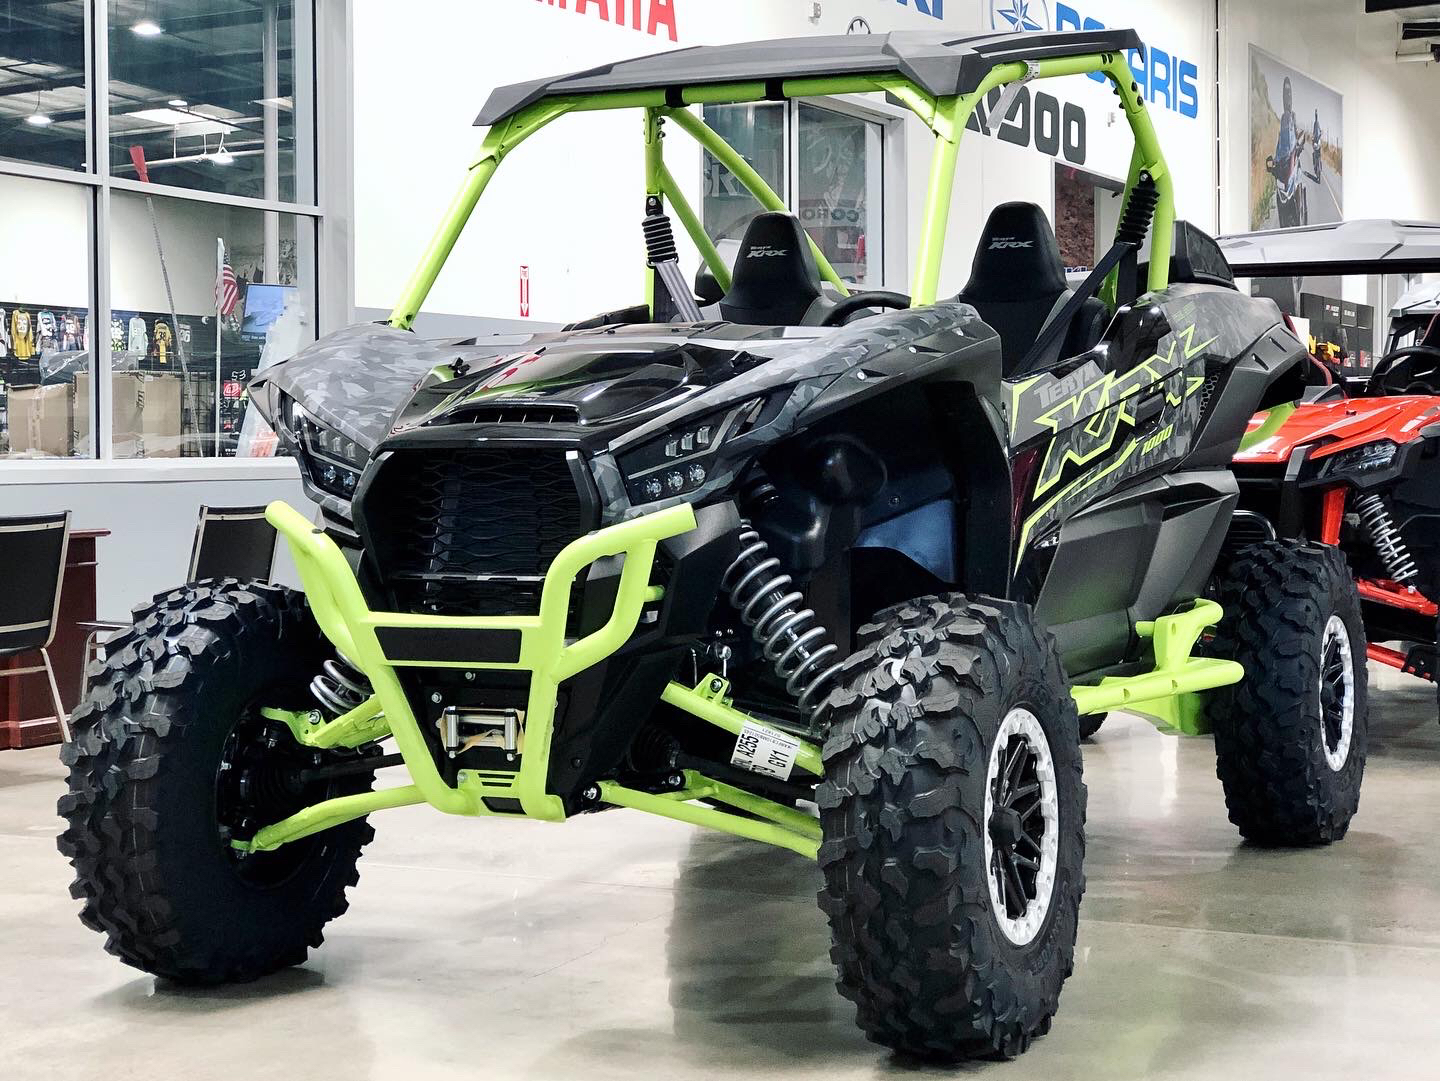 2021 Kawasaki Teryx KRX 1000 Trail Edition in Corona, California - Photo 3